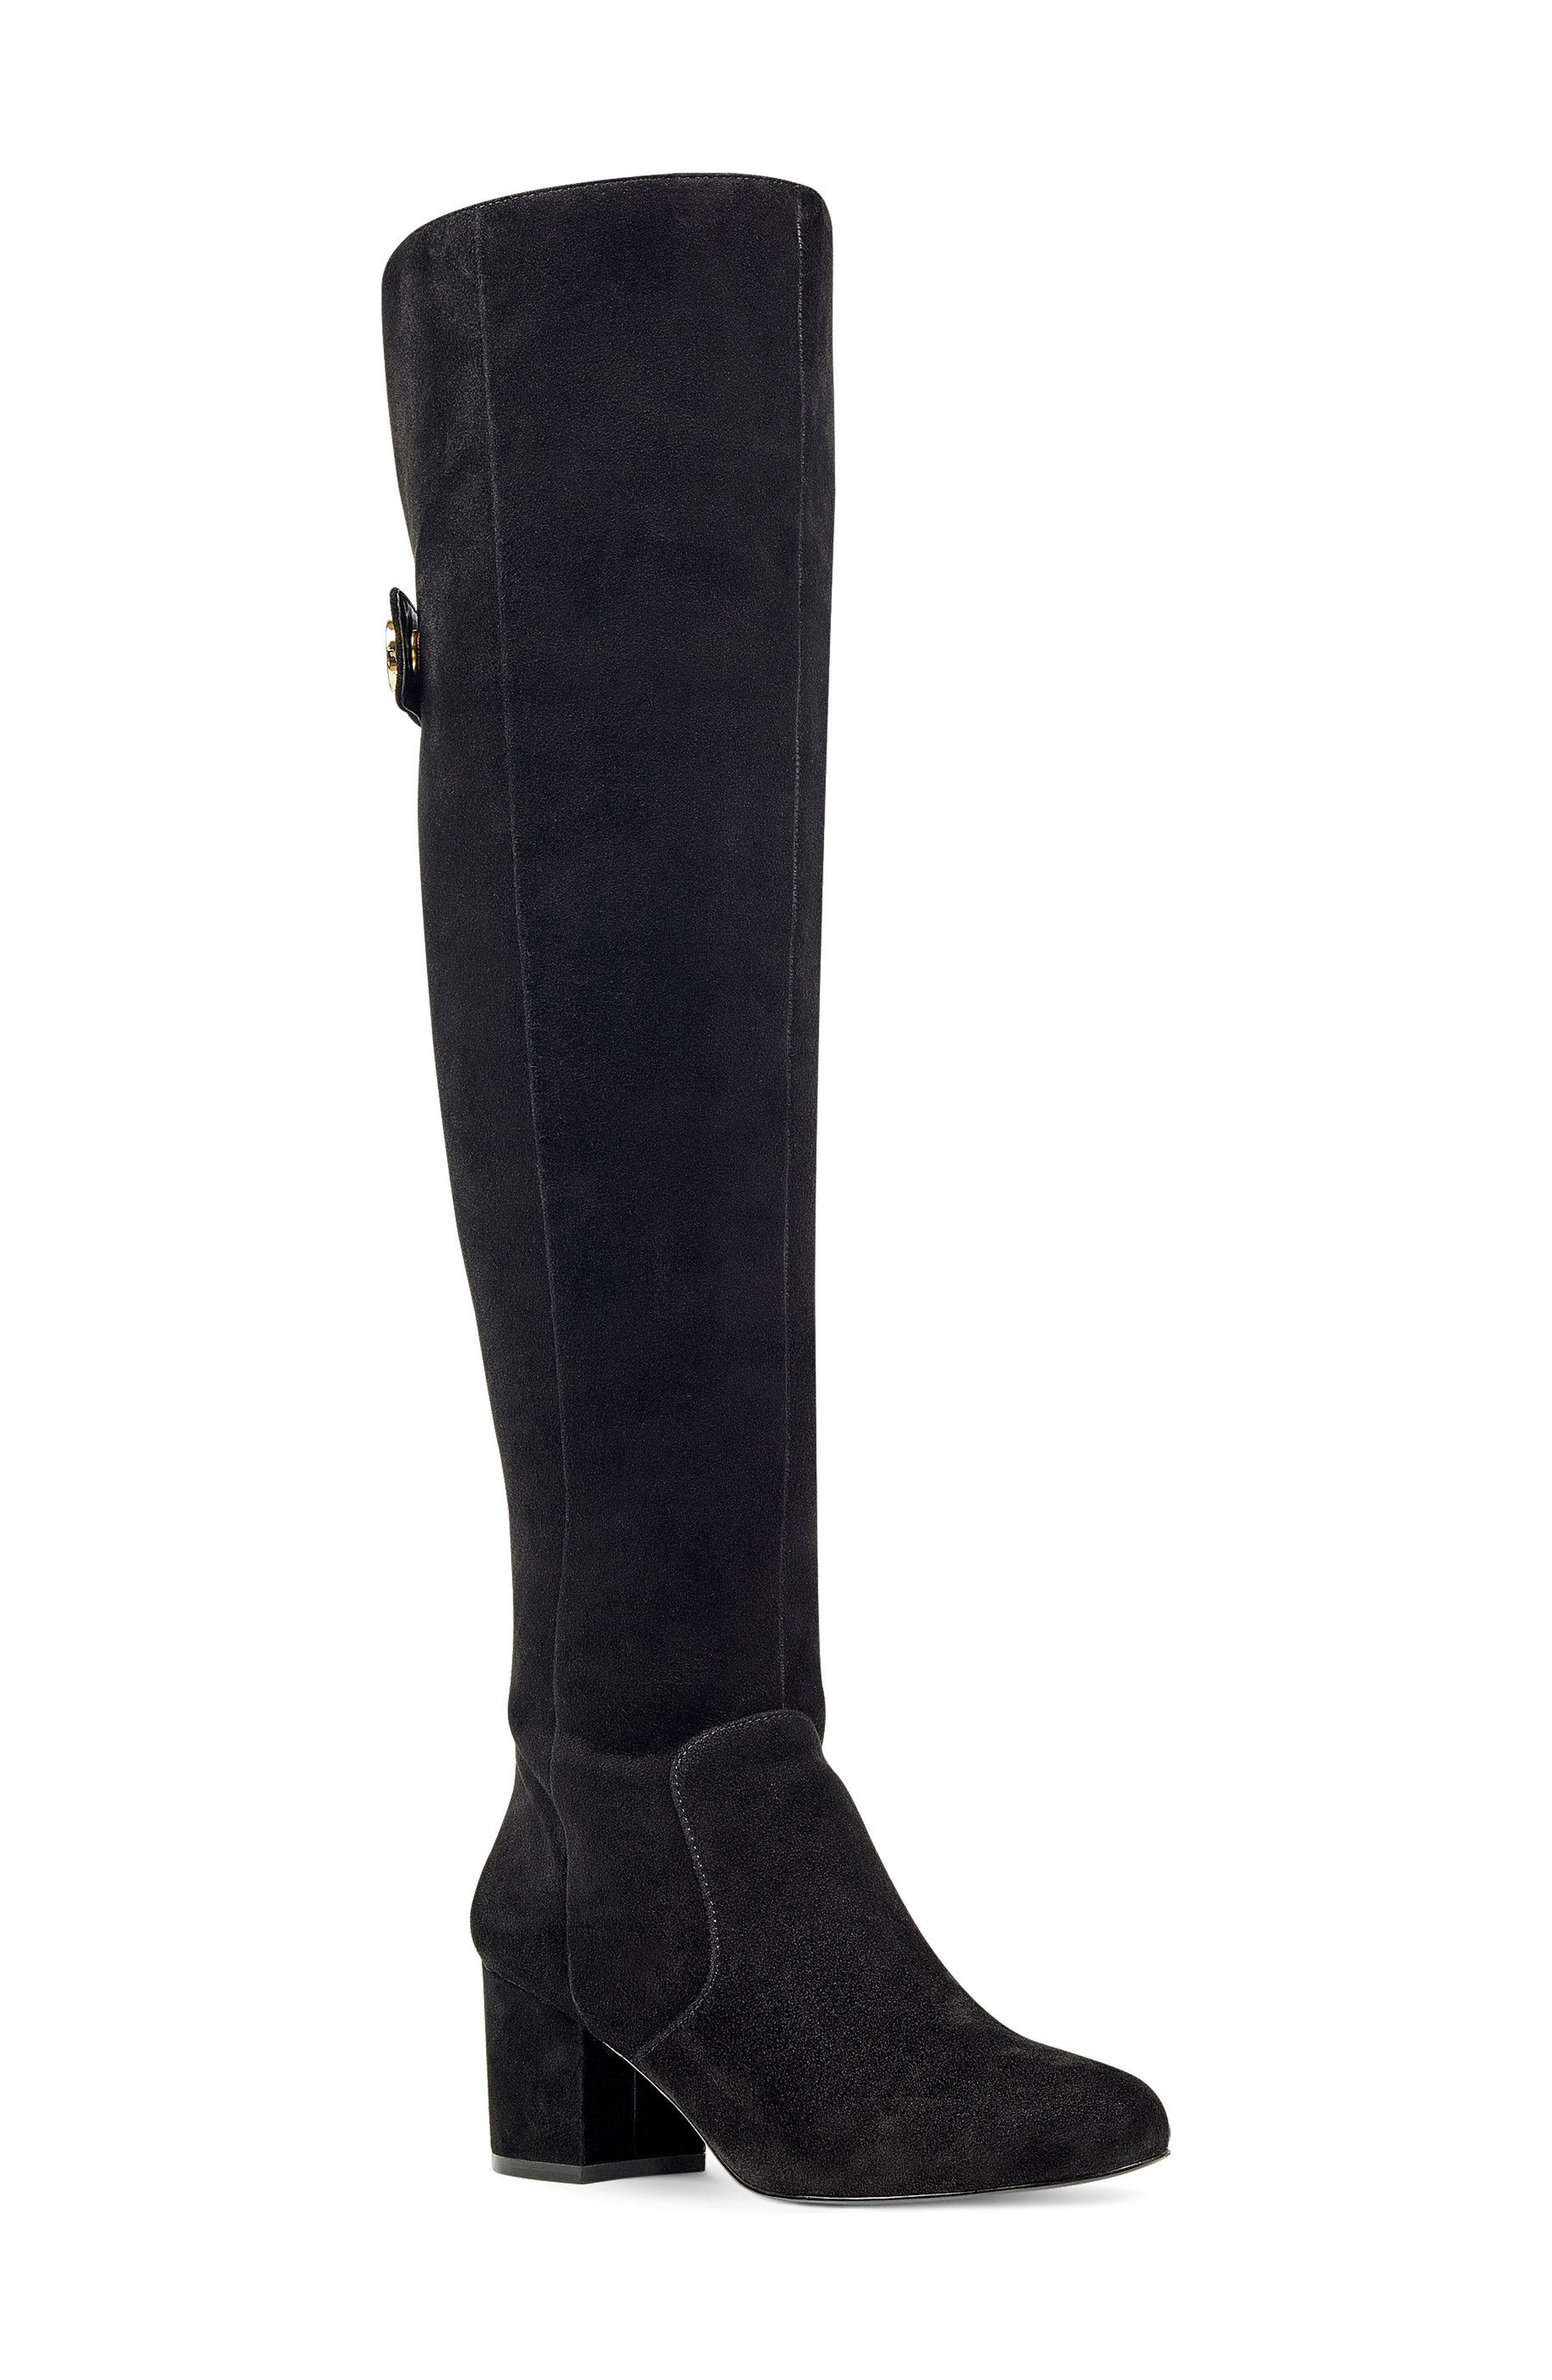 Queddy Over the Knee Boot,                         Main,                         color,